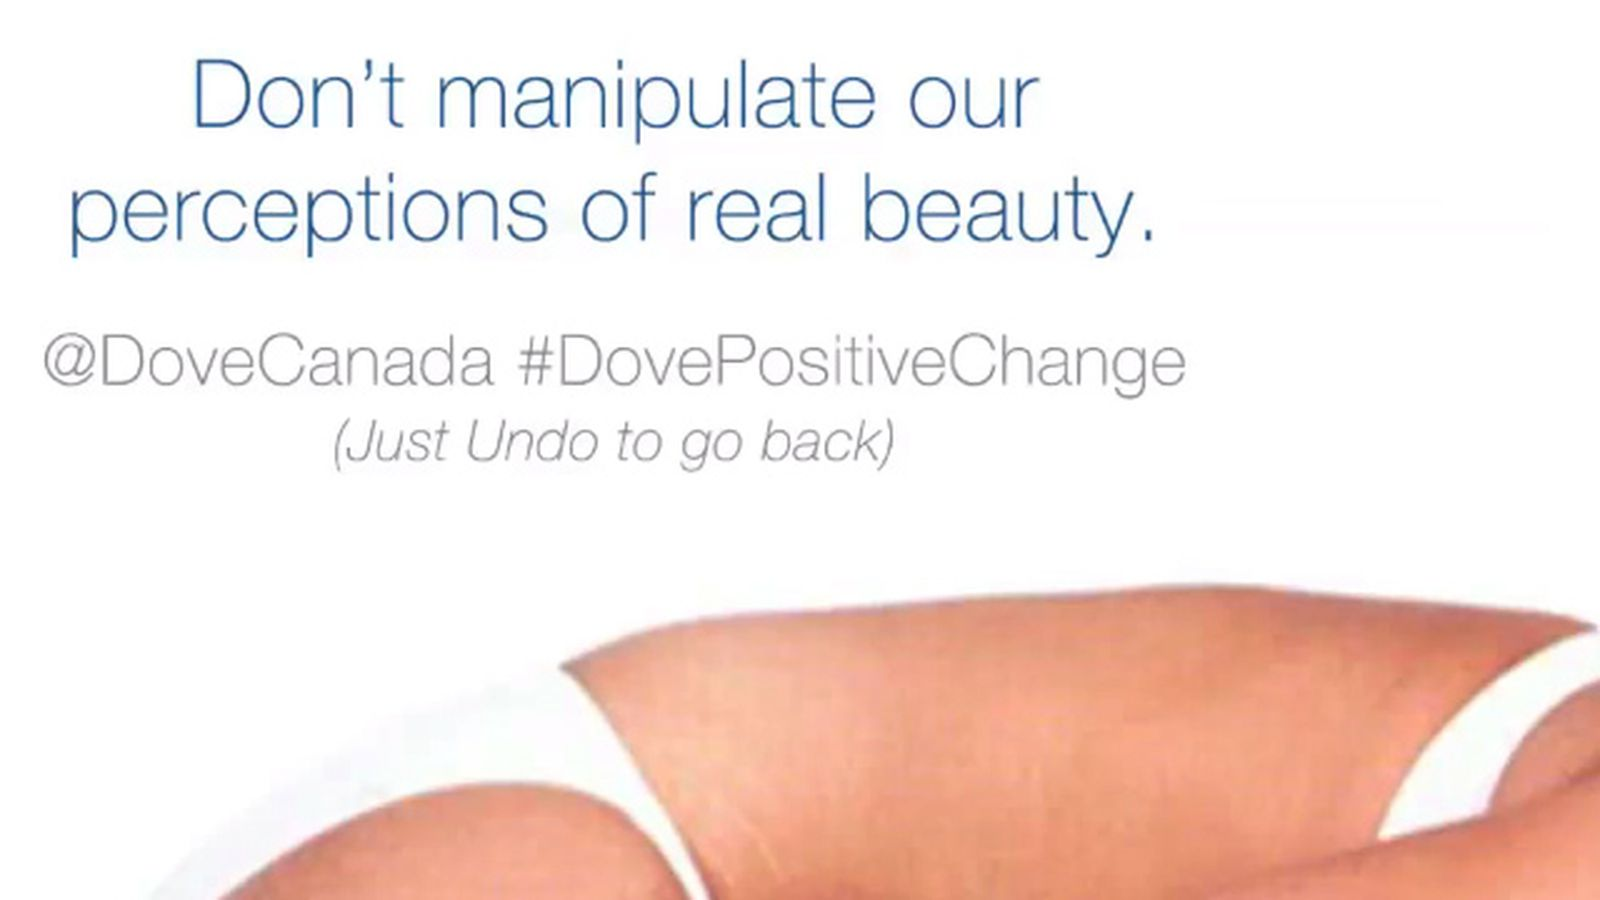 Dove releases rogue Photoshop action that undoes 'real beauty' manipulations